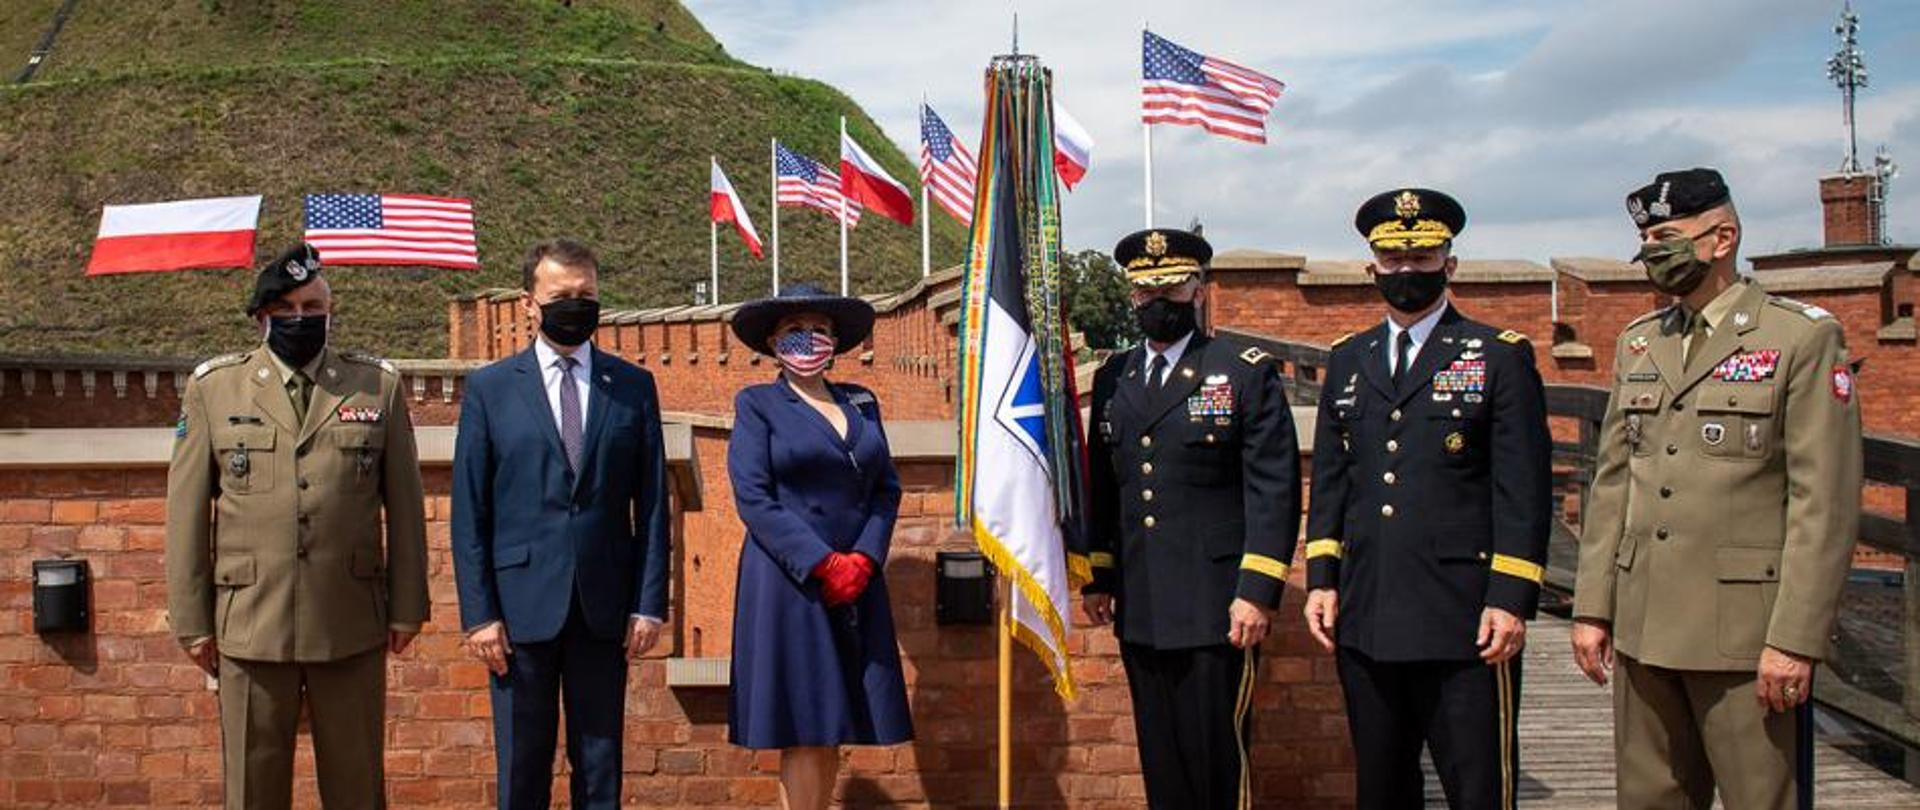 Meeting of MOD and US Ambassador at the Kosciuszko Mound to announce V corps forward HQ location in Poland